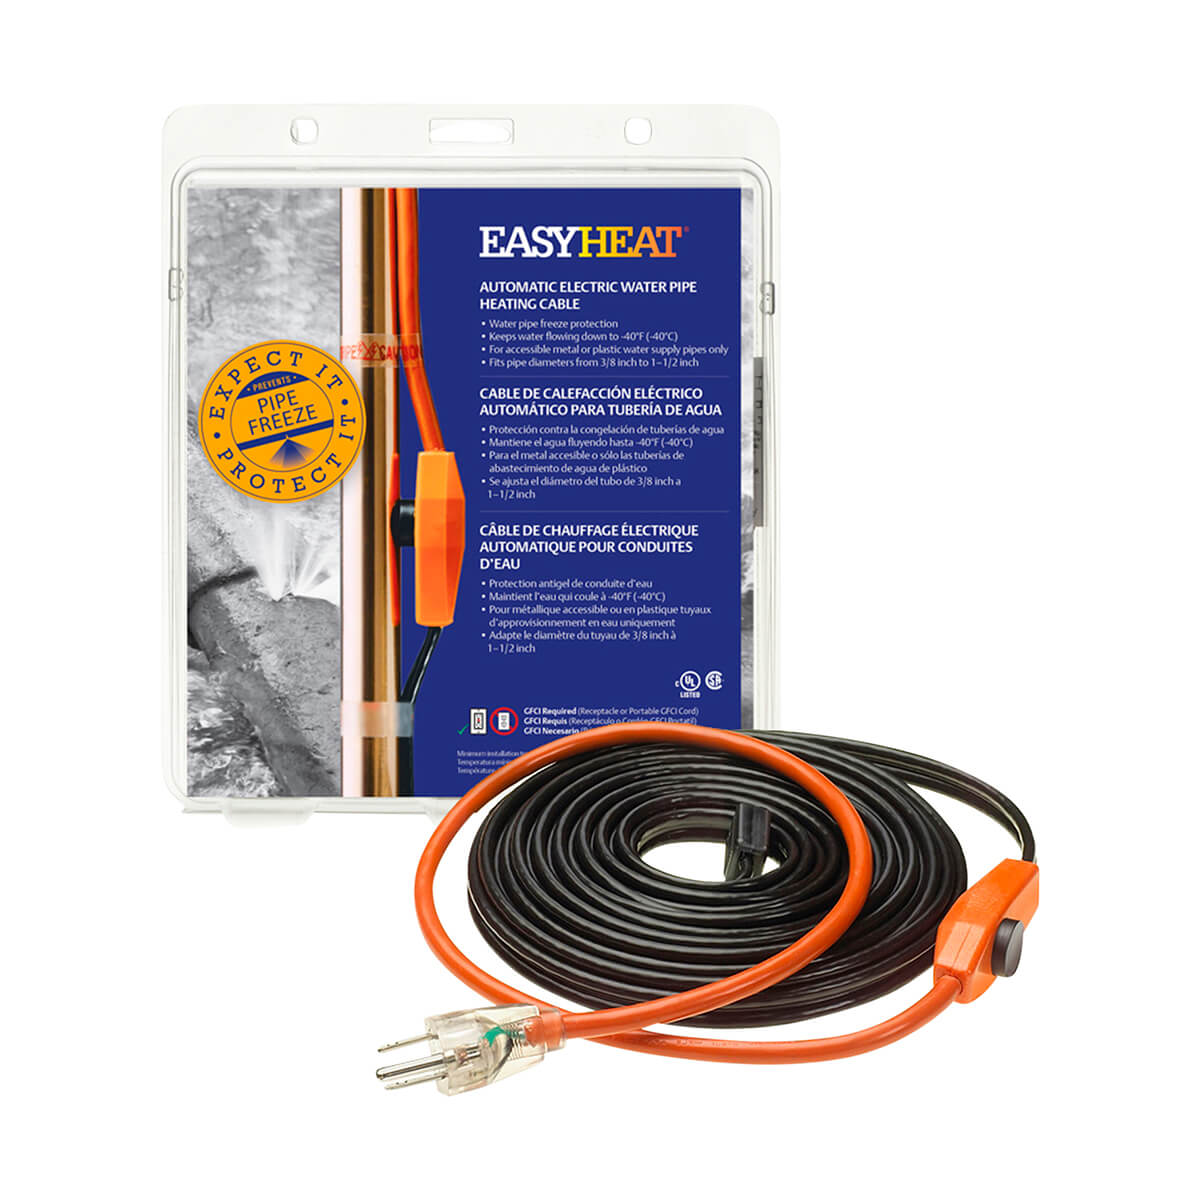 Pipe Heating Cable - 12'